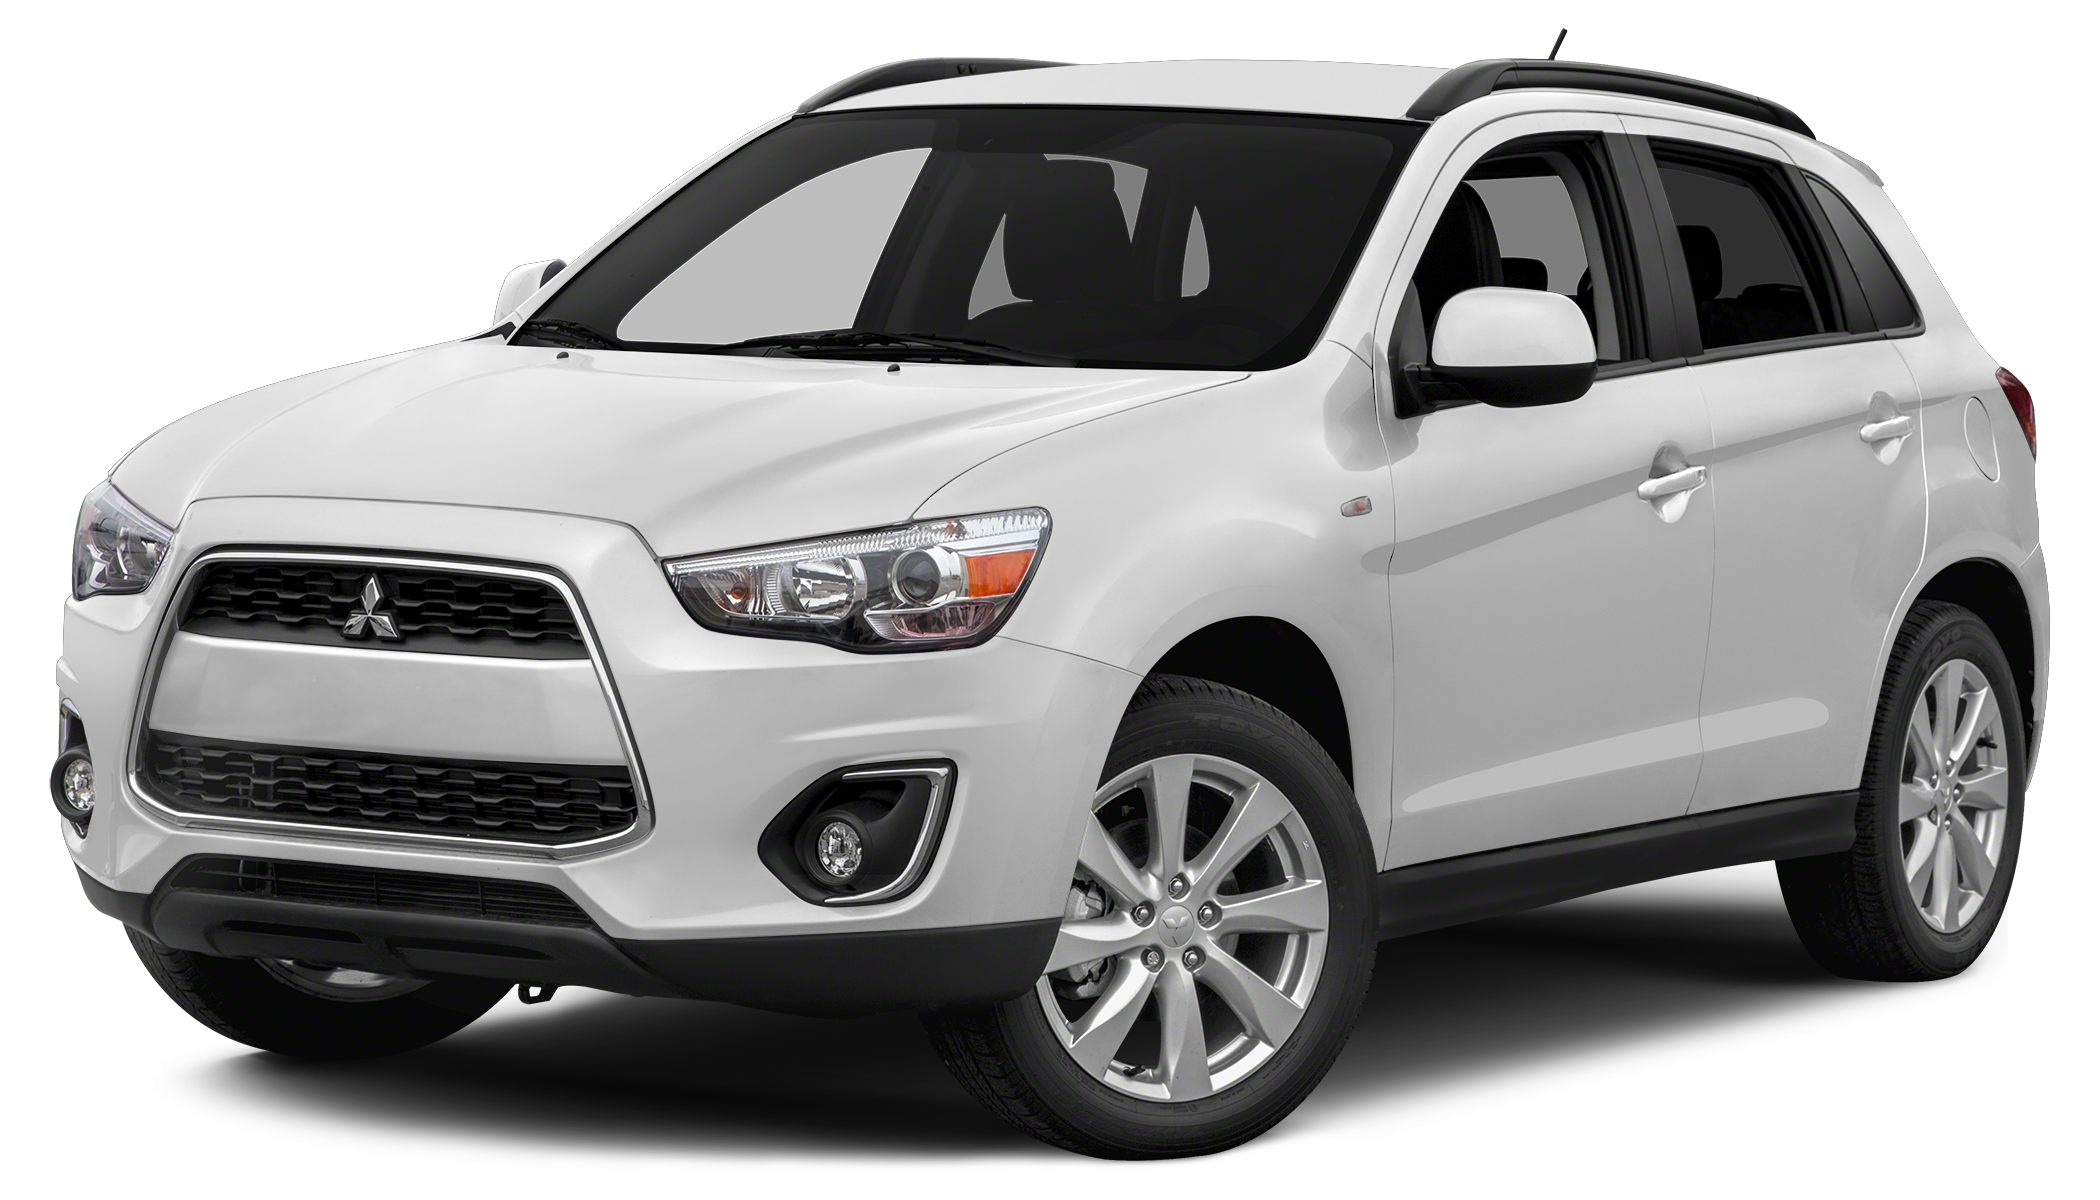 2014 Mitsubishi Outlander Sport SE ONE PRICE STOP NO HASSLE NO HAGGLE CAR BUYING EXPERIENCE